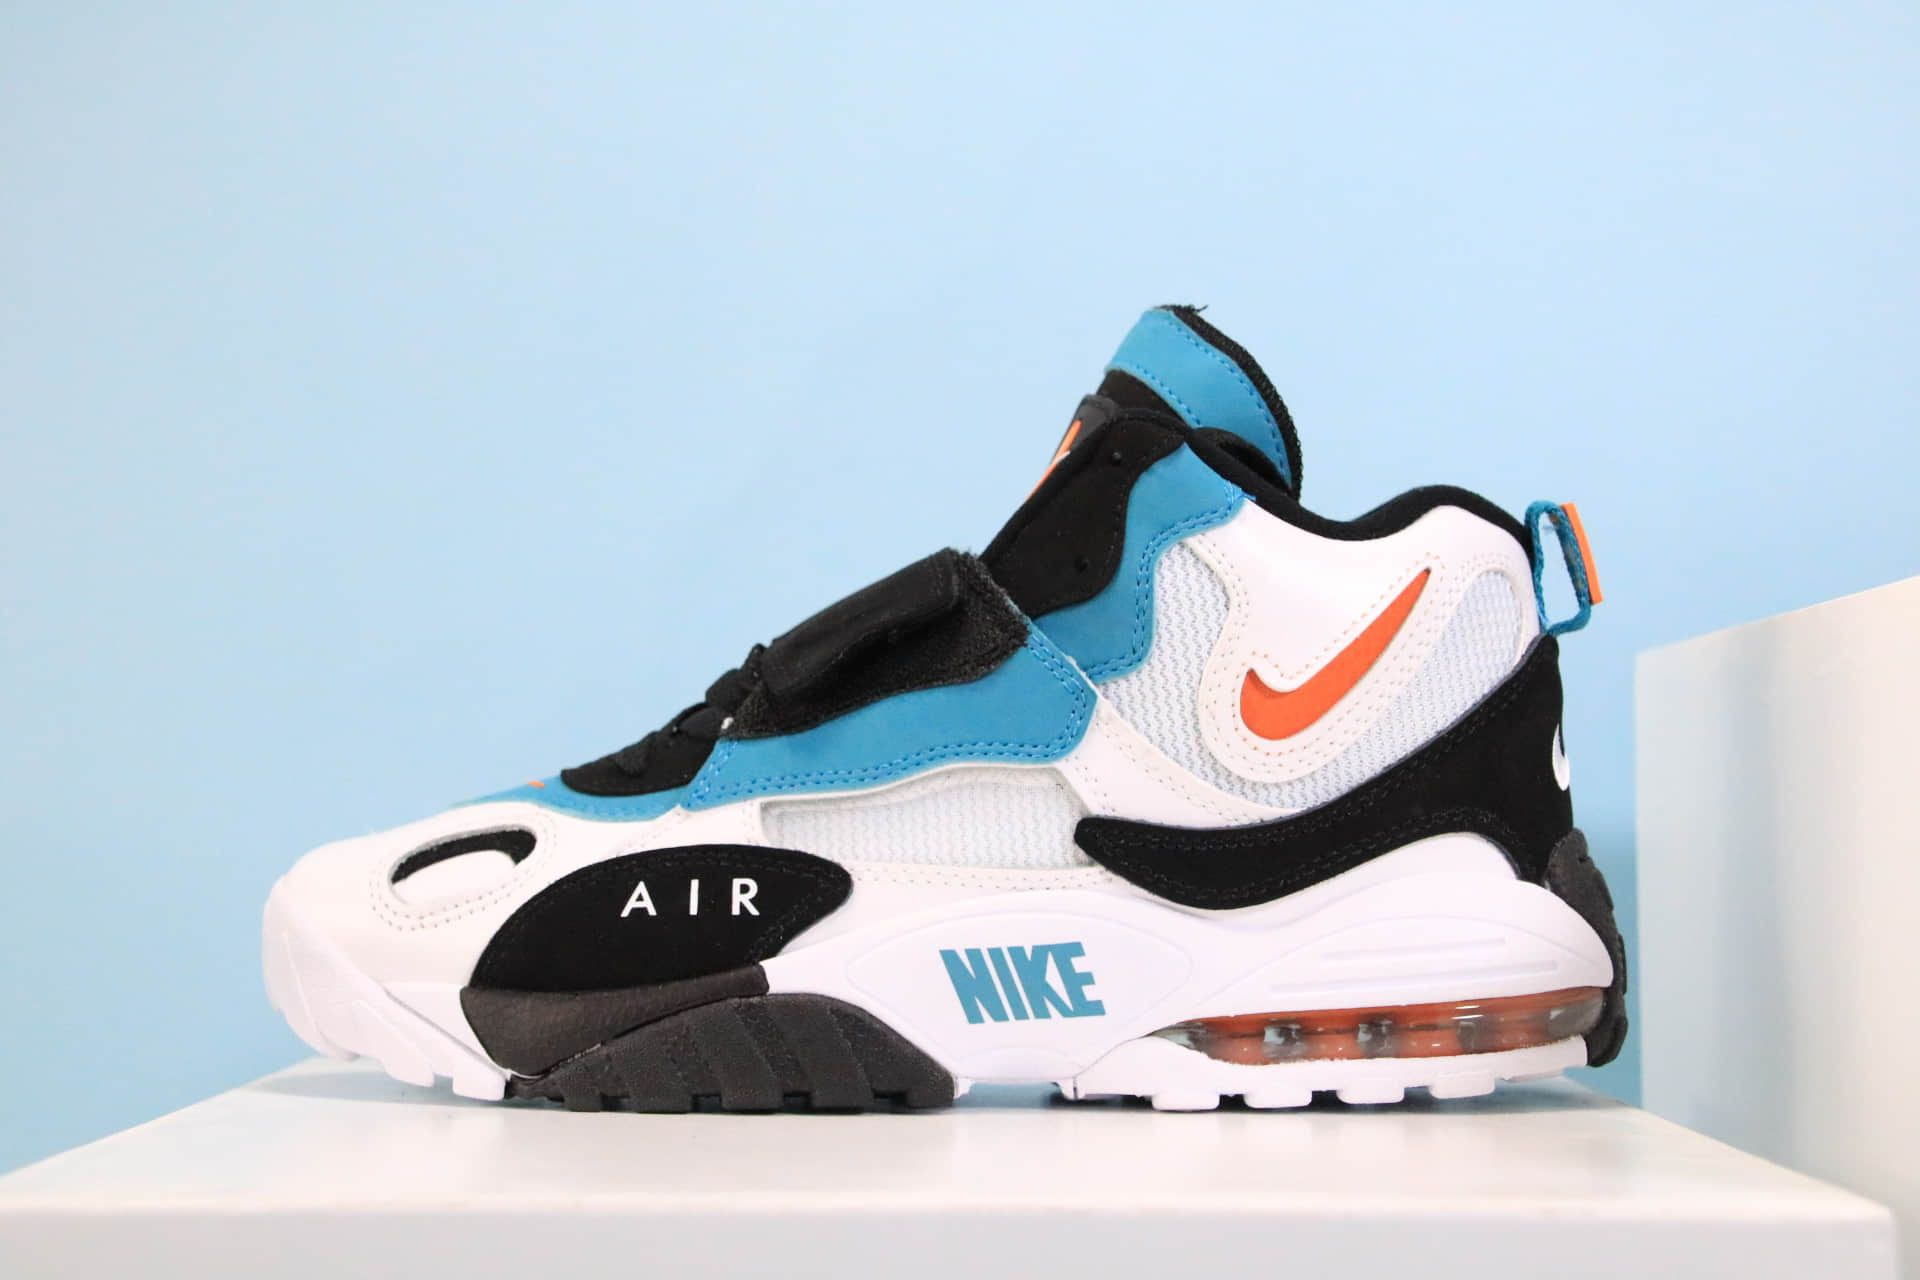 Dan Marino Nike Air Max Speed Turf Dolphins colors in 2019